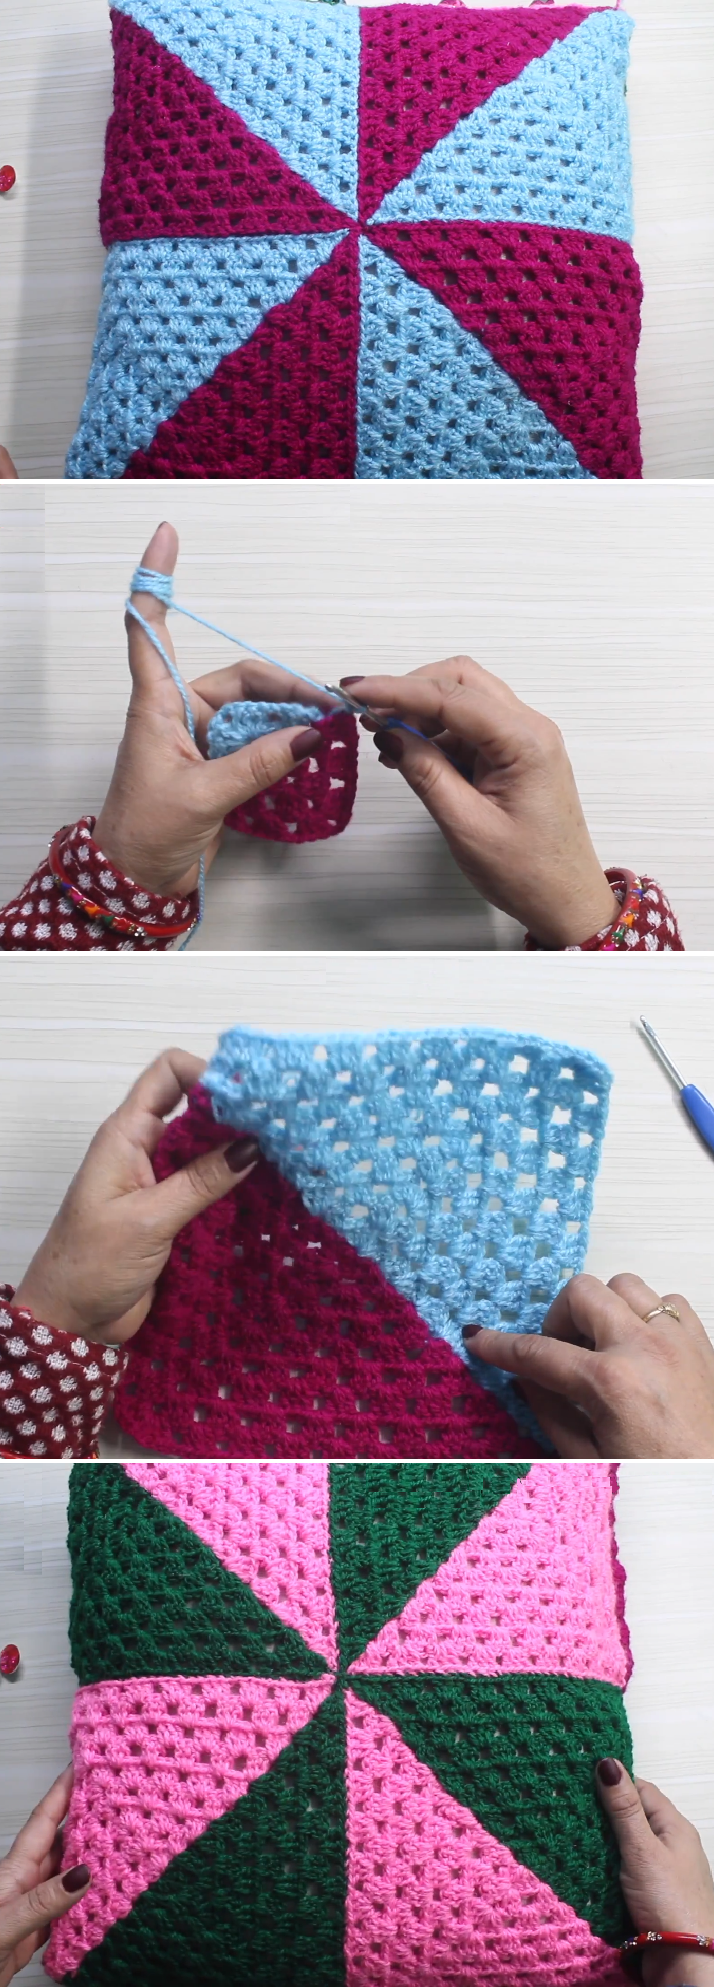 Crochet Pillow Cover Very Fast and Very Easy | гачок | Pinterest ...